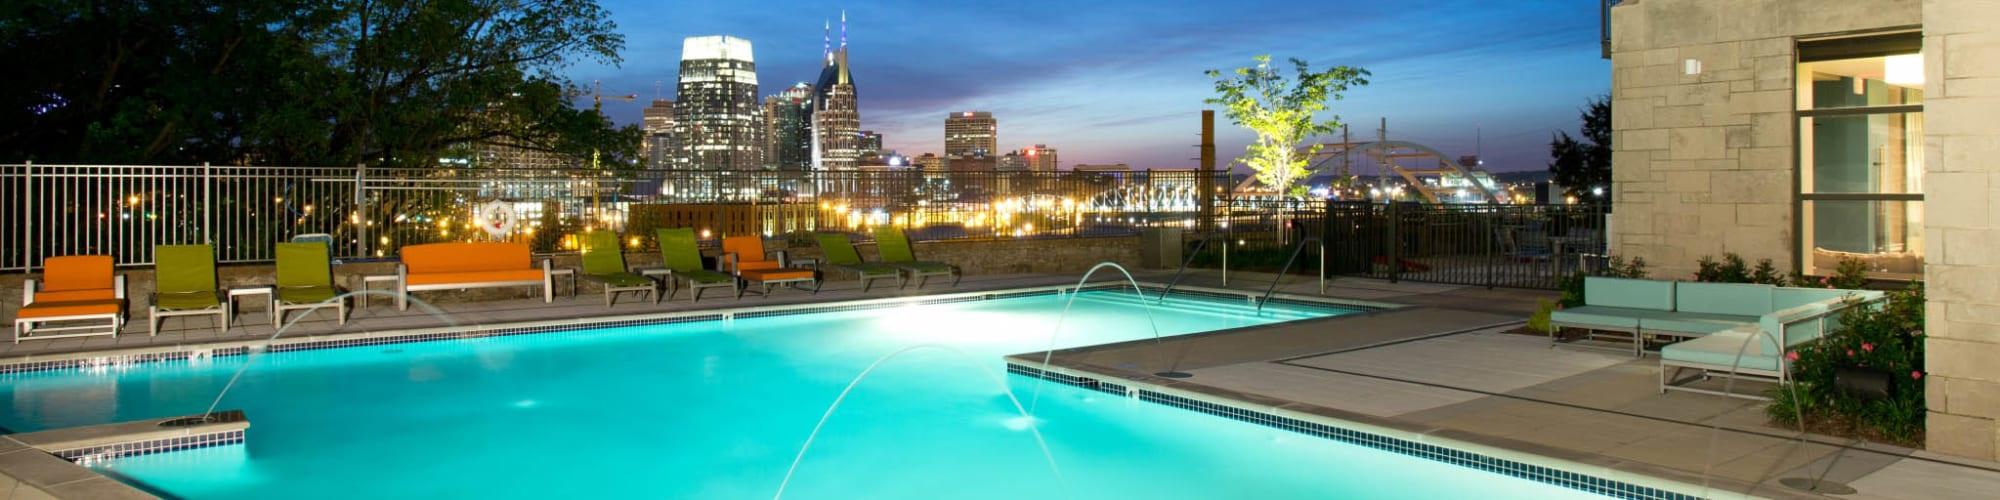 Apply now to live at City View Apartments in Nashville, Tennessee